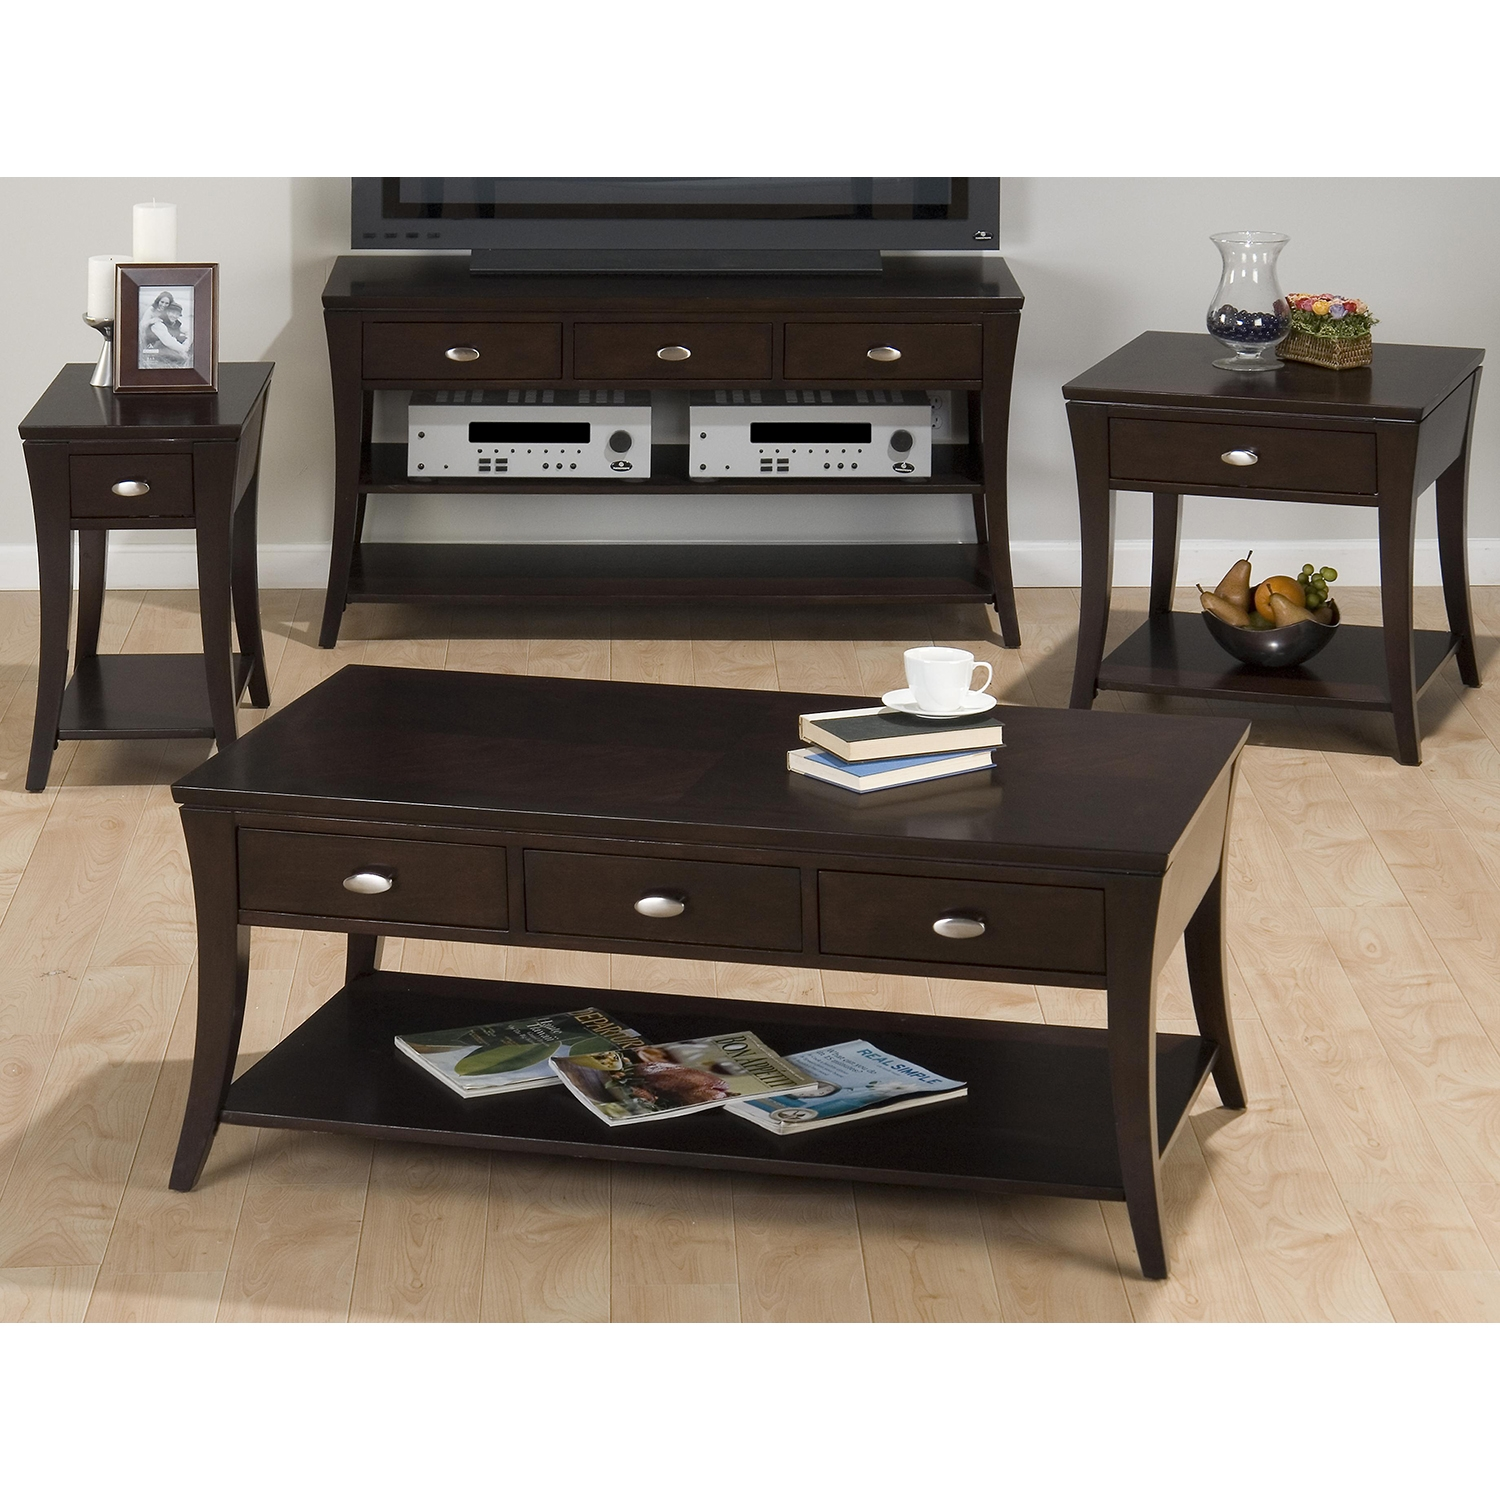 Manhattan Cocktail Table - Espresso - JOFR-629-1